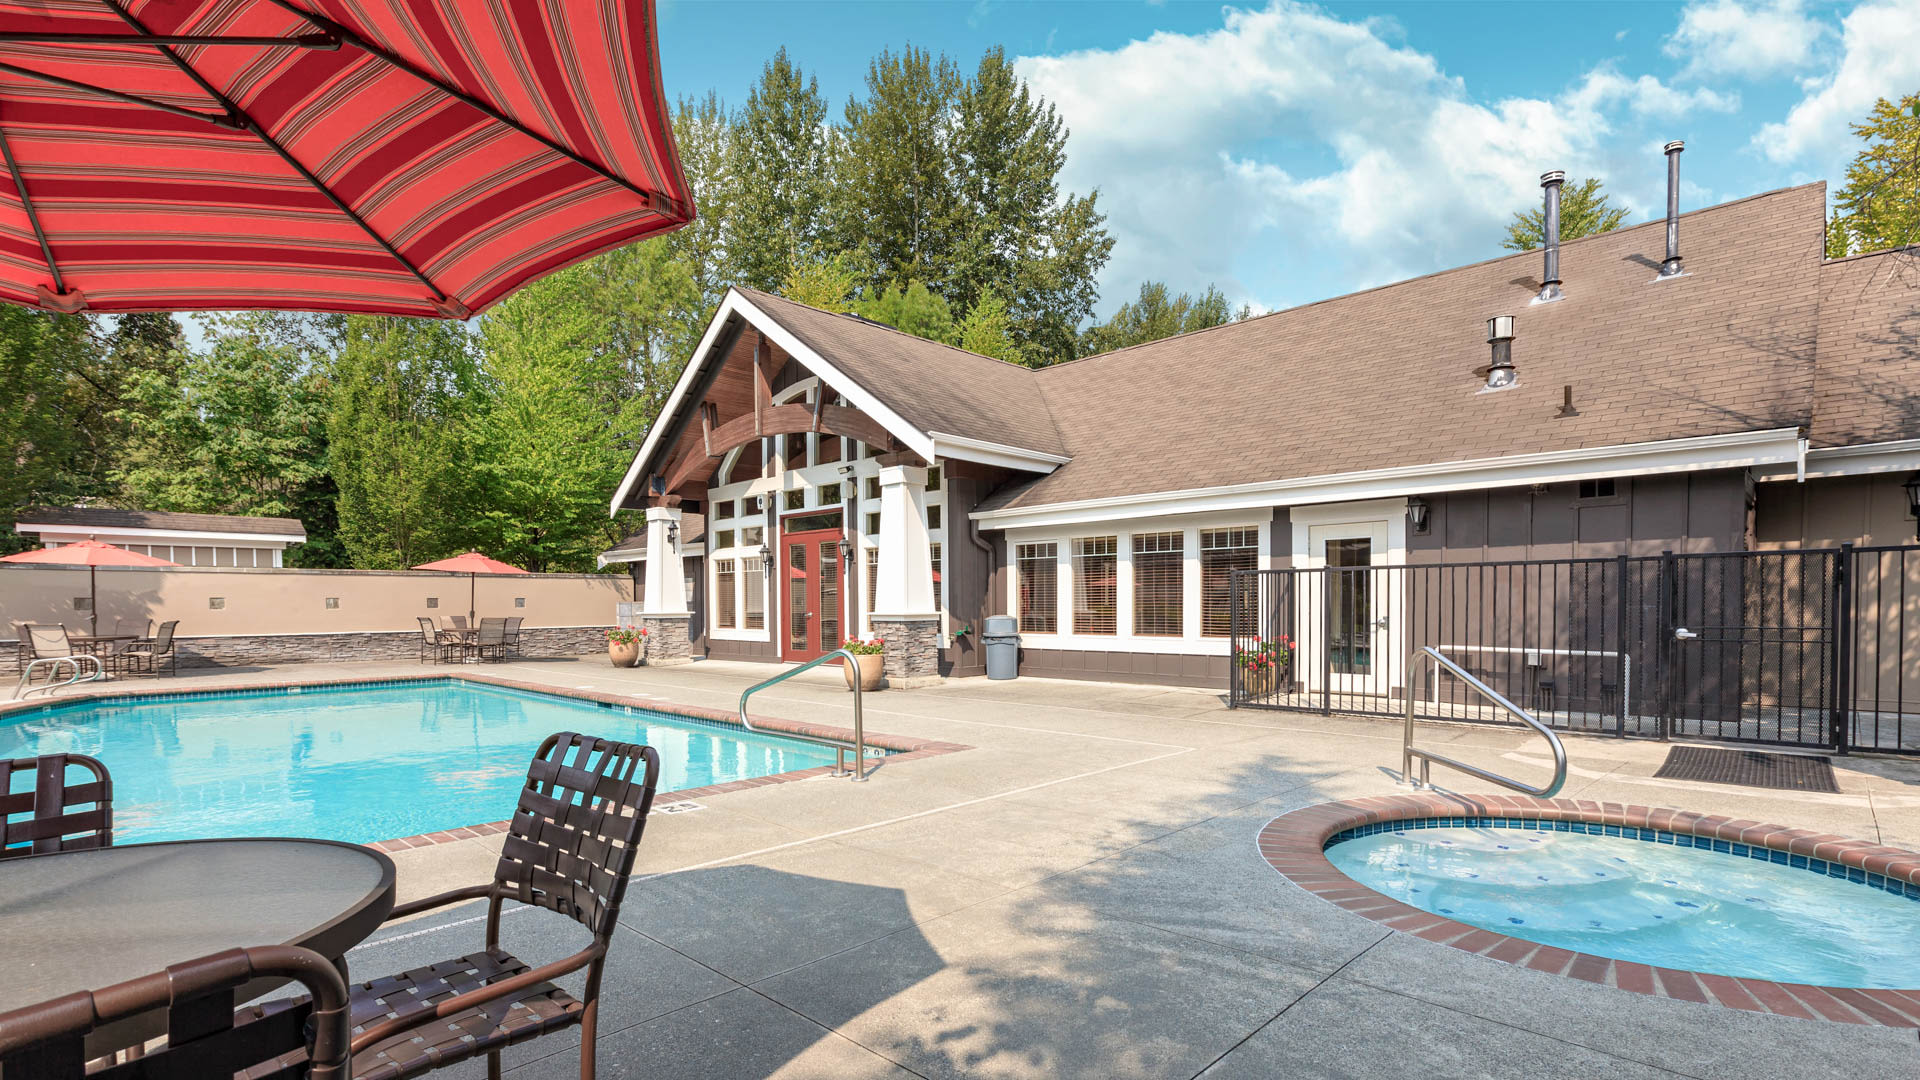 Providence Apartments - Swimming Pool and Hot Tub